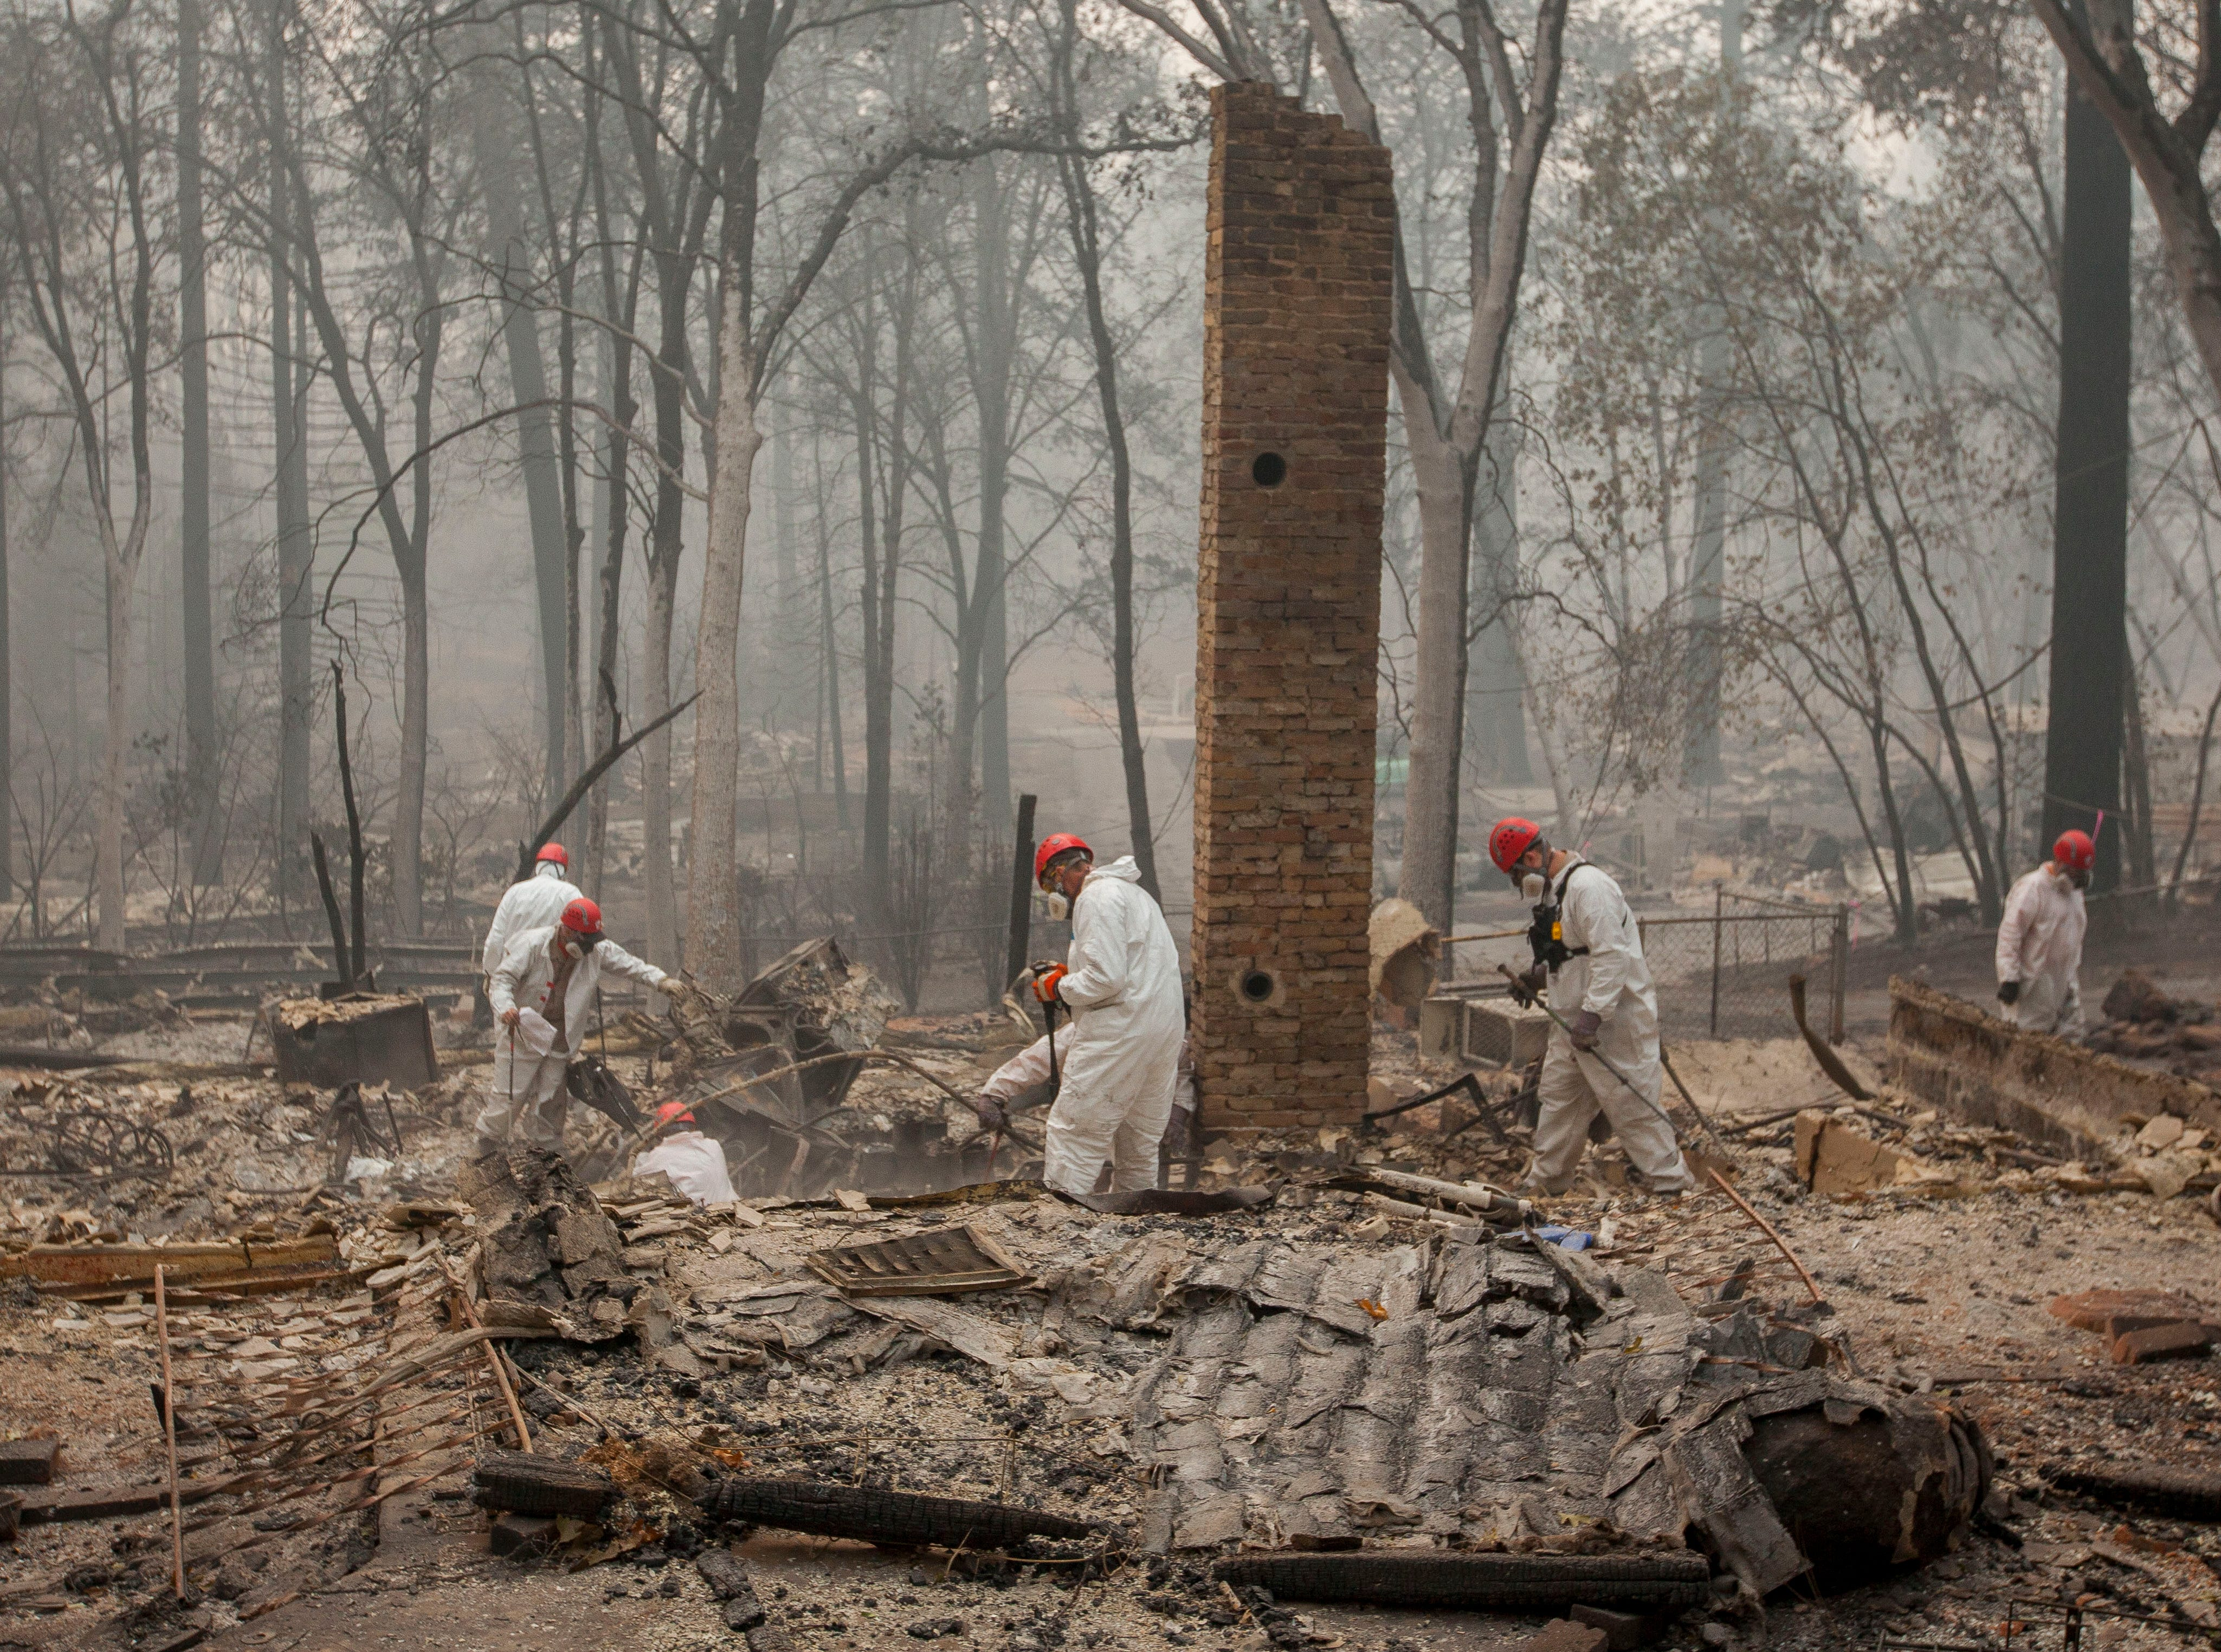 Search and rescue personnel comb through debris searching for remains in a neighborhood near Pentz Road in Paradise, CA, after the Camp Fire devastated the area.